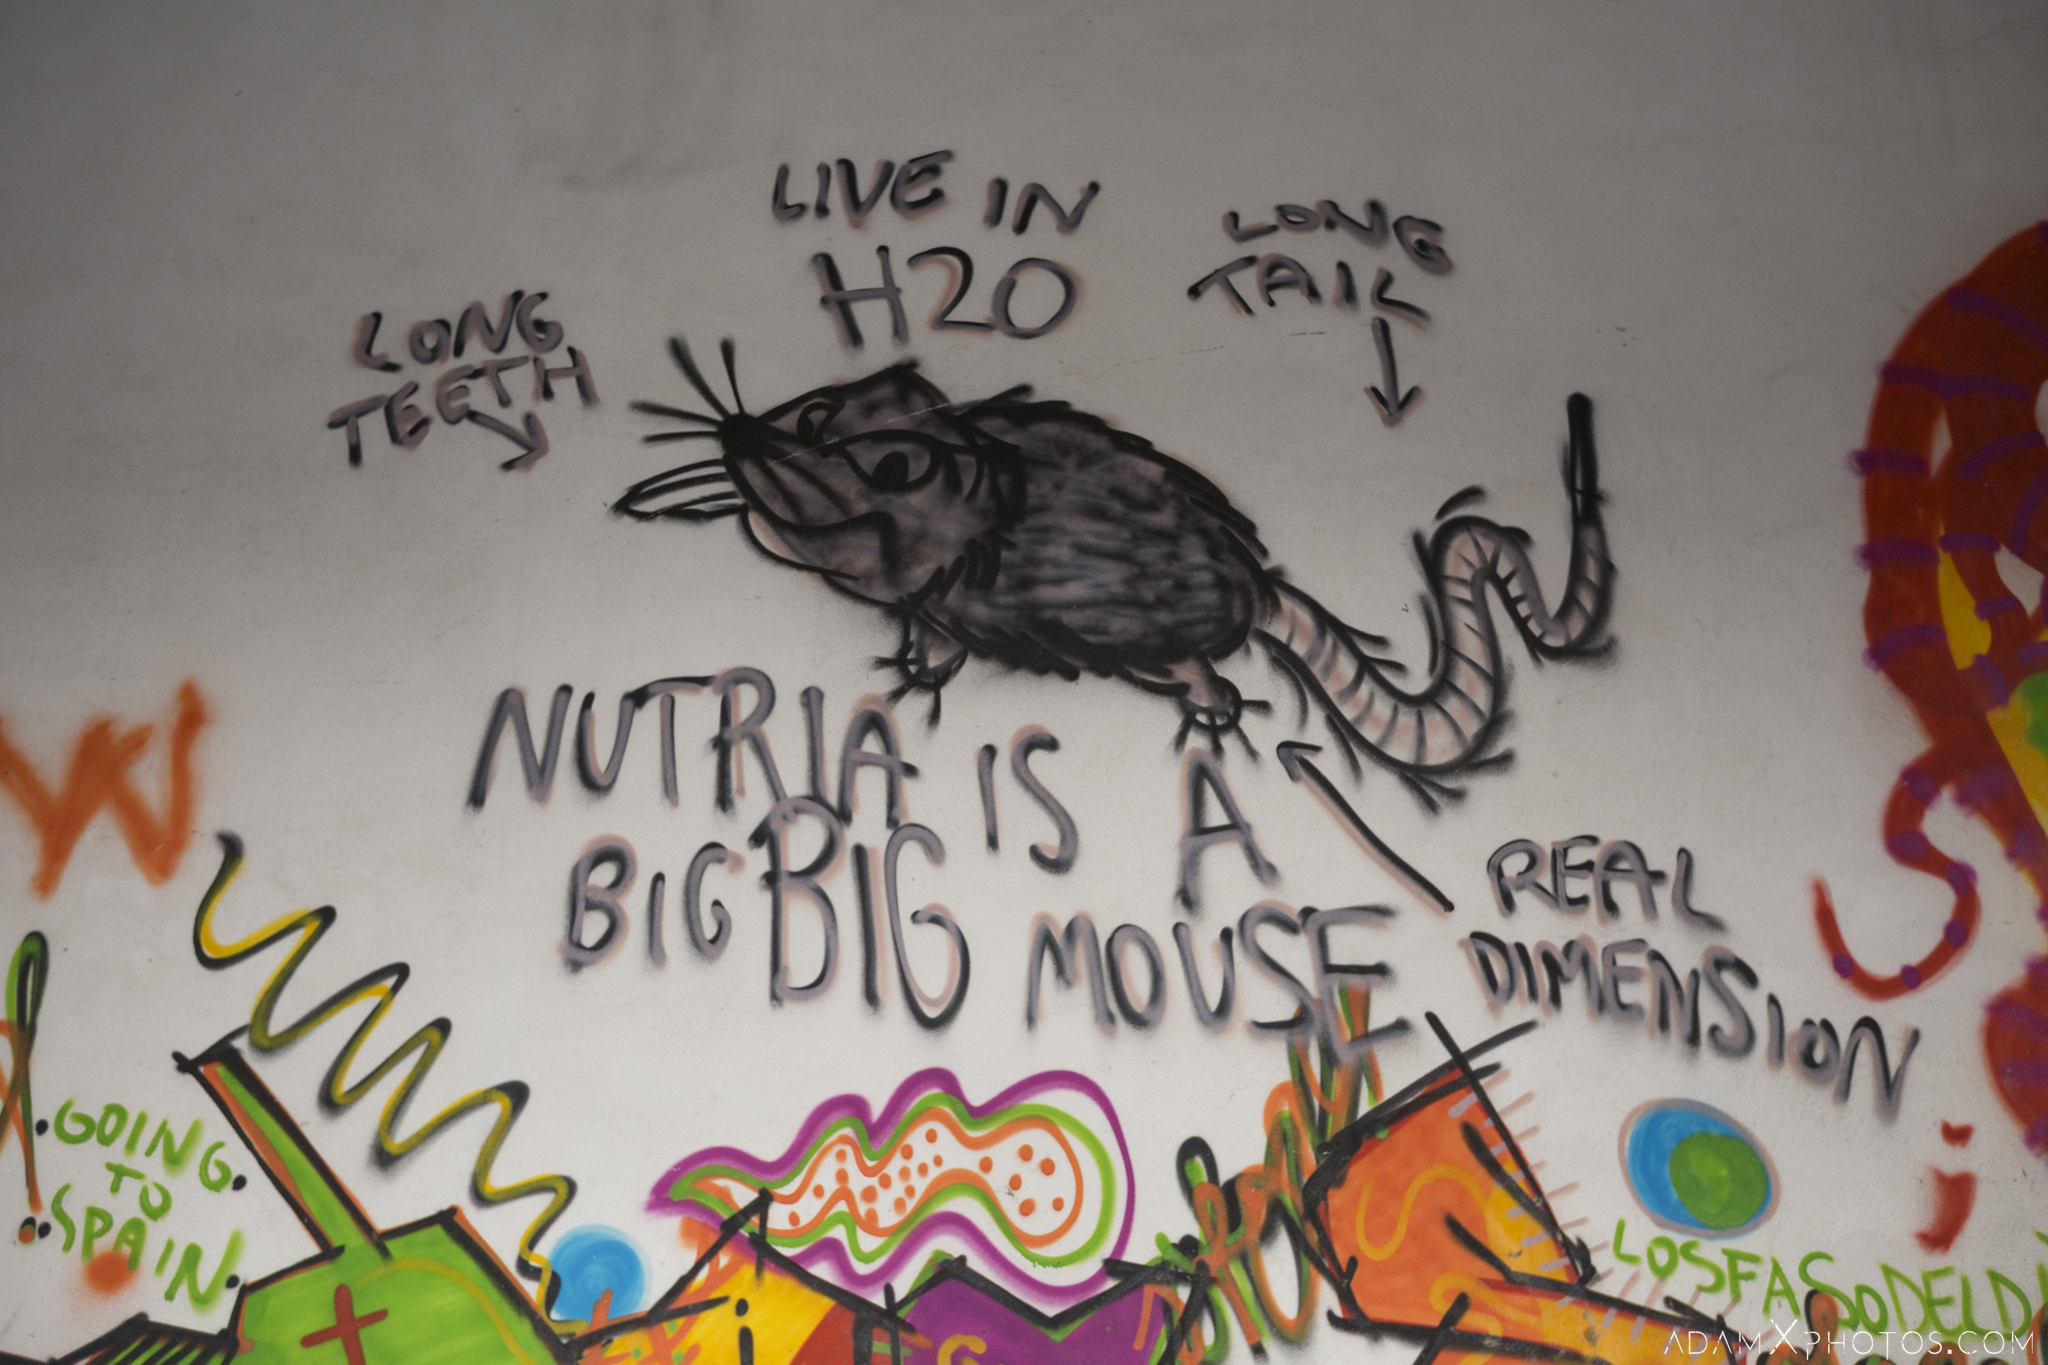 Nutria is a big big mouse graffiti colourful La fabbrica dei colori factory Adam X Urban Exploration Italy Italia Access 2016 Abandoned decay lost forgotten derelict location creepy haunting eerie